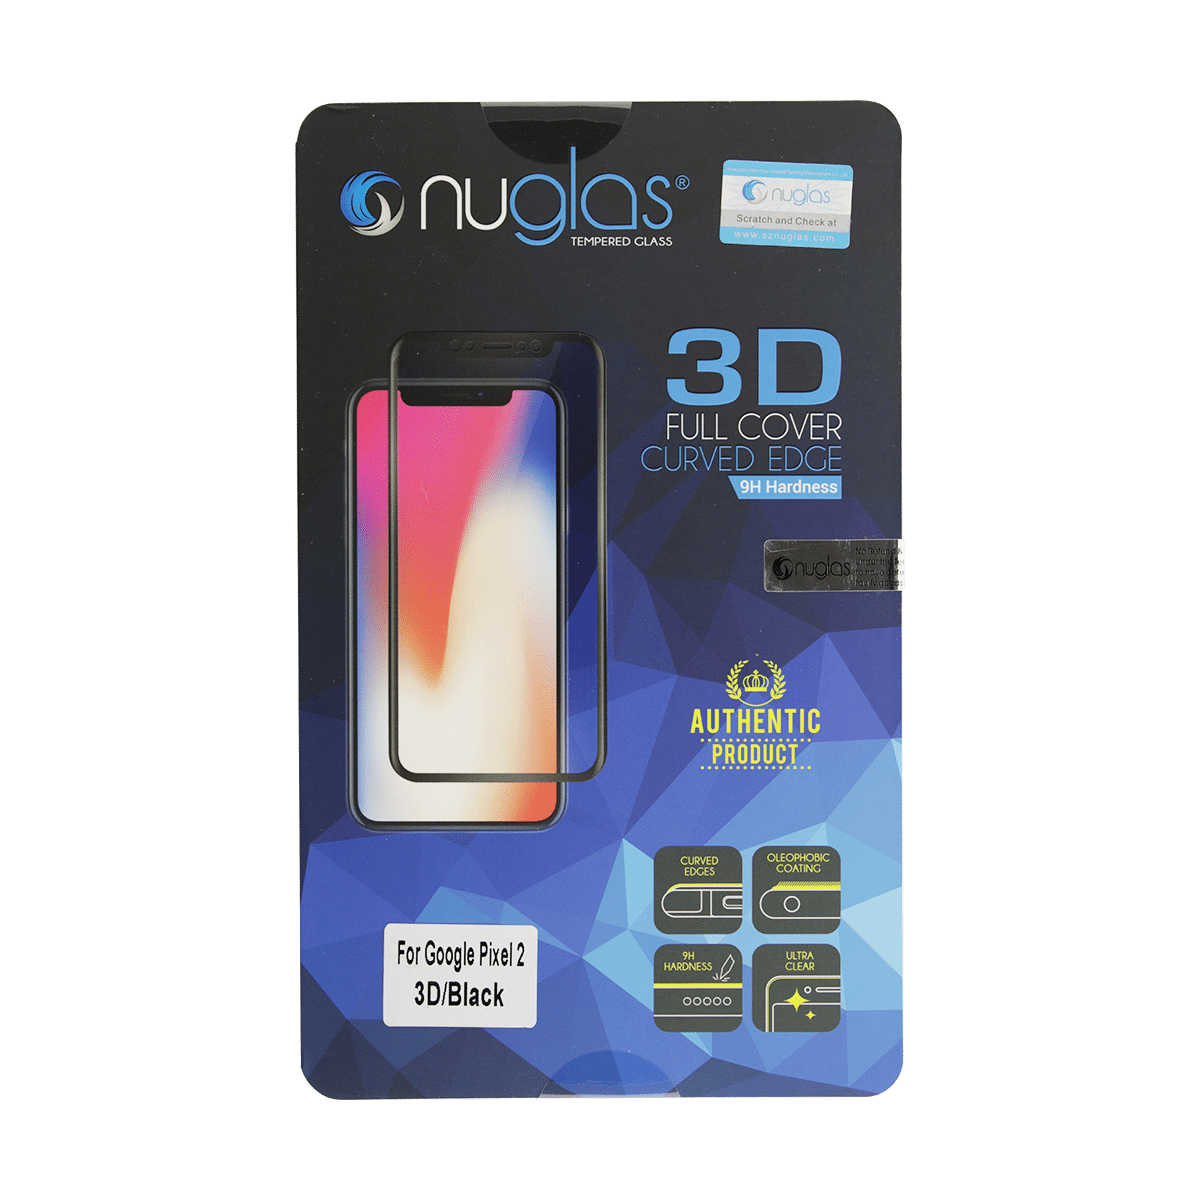 Google Pixel 2 NuGlas Tempered Glass Protection Screen